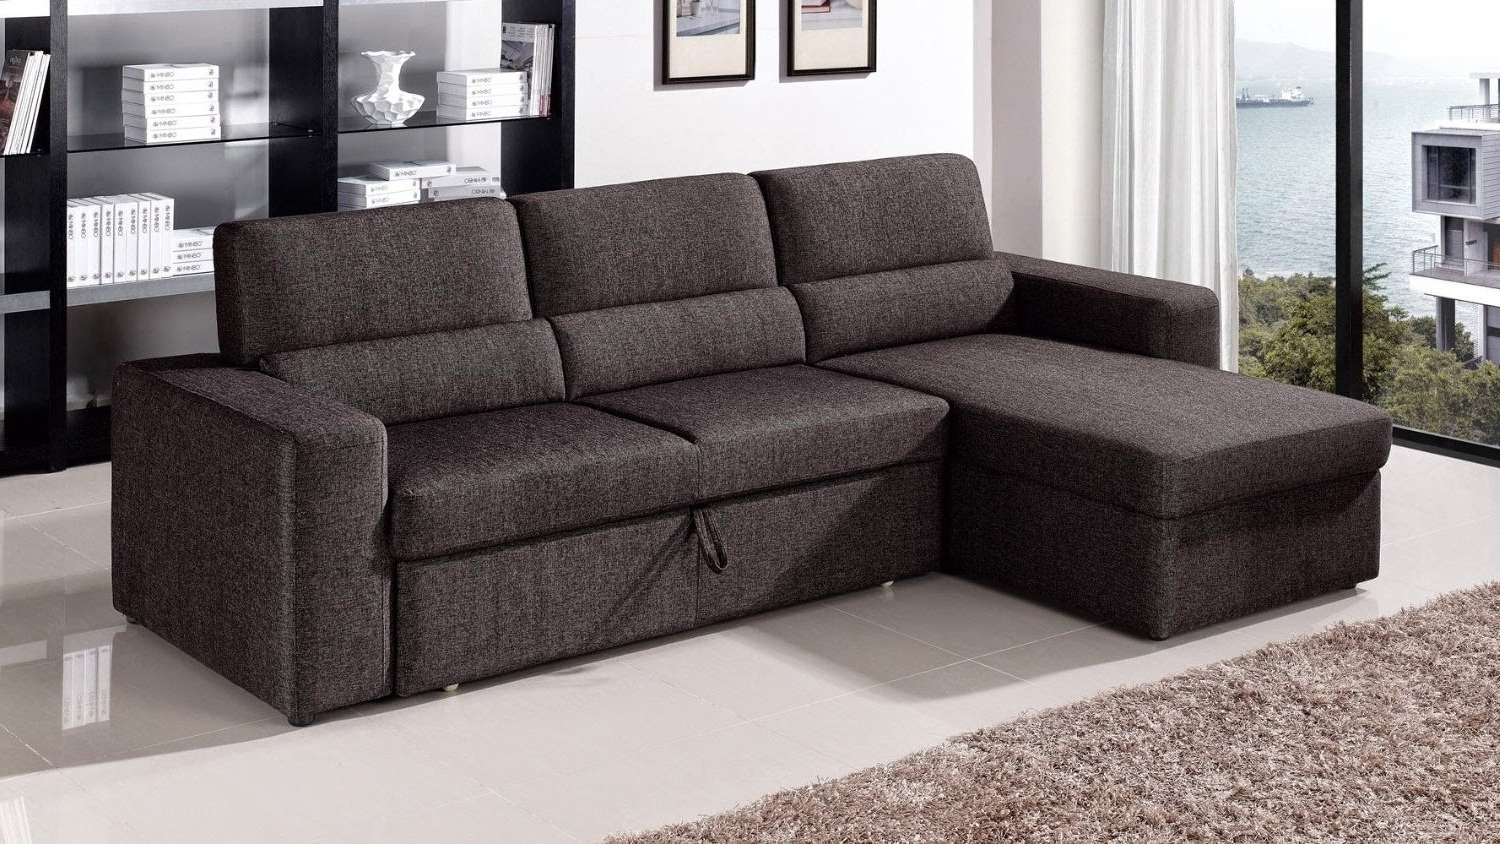 Well Known Sectional Sofas With Queen Size Sleeper For Inspirational Leather Sectional Sofa Pull Out – Mediasupload (View 15 of 15)